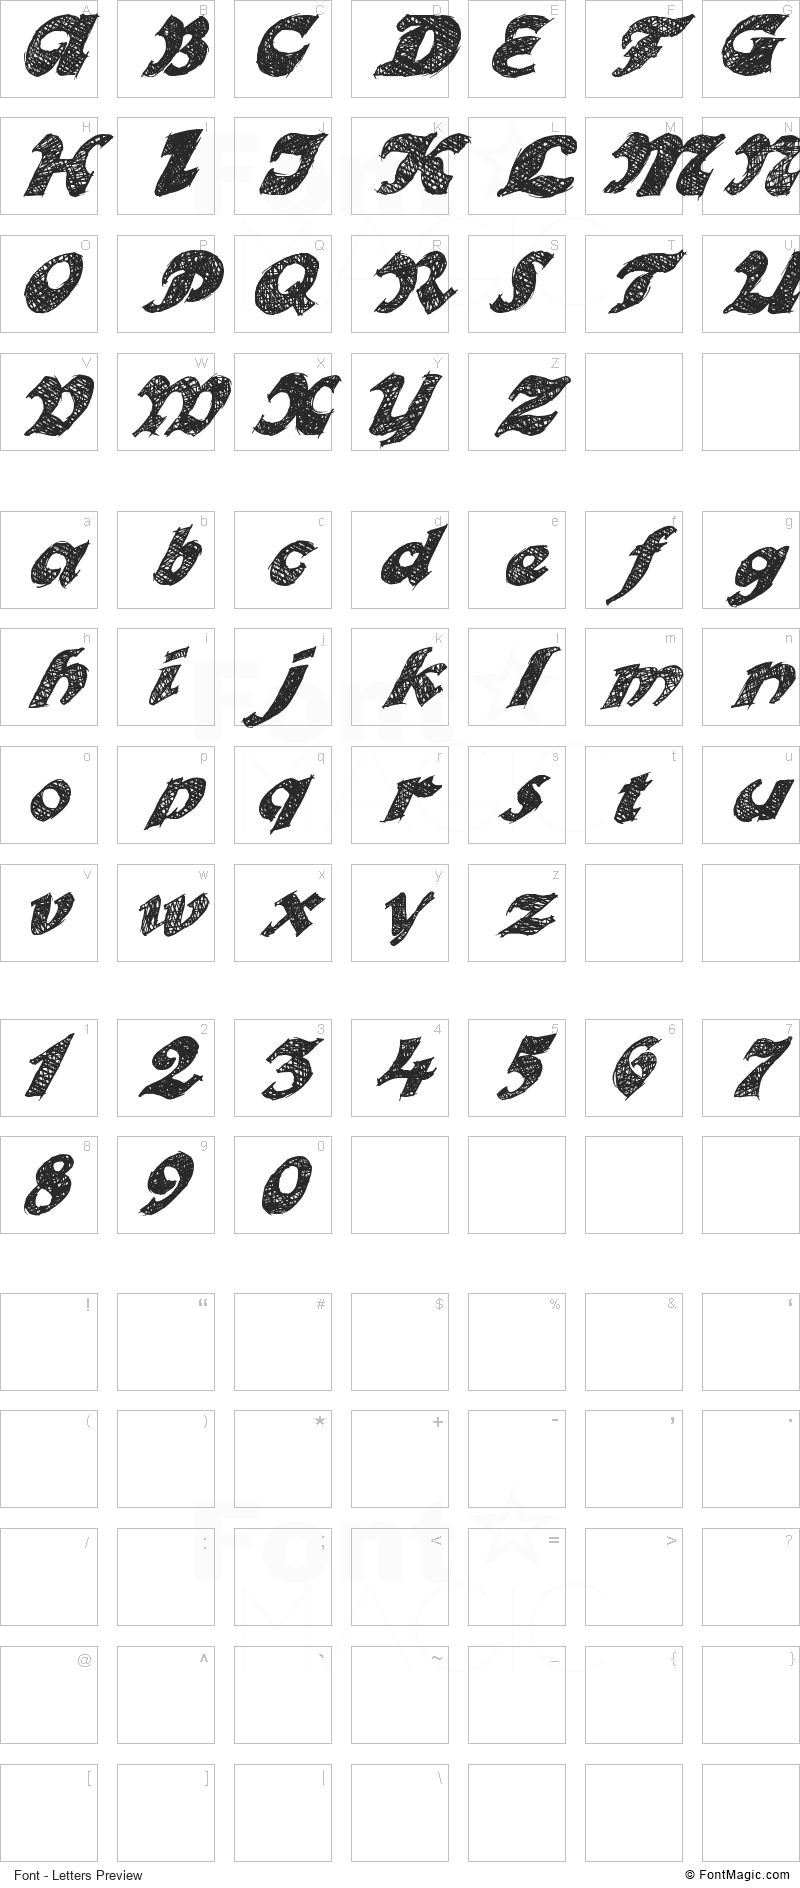 Otto Land Font - All Latters Preview Chart